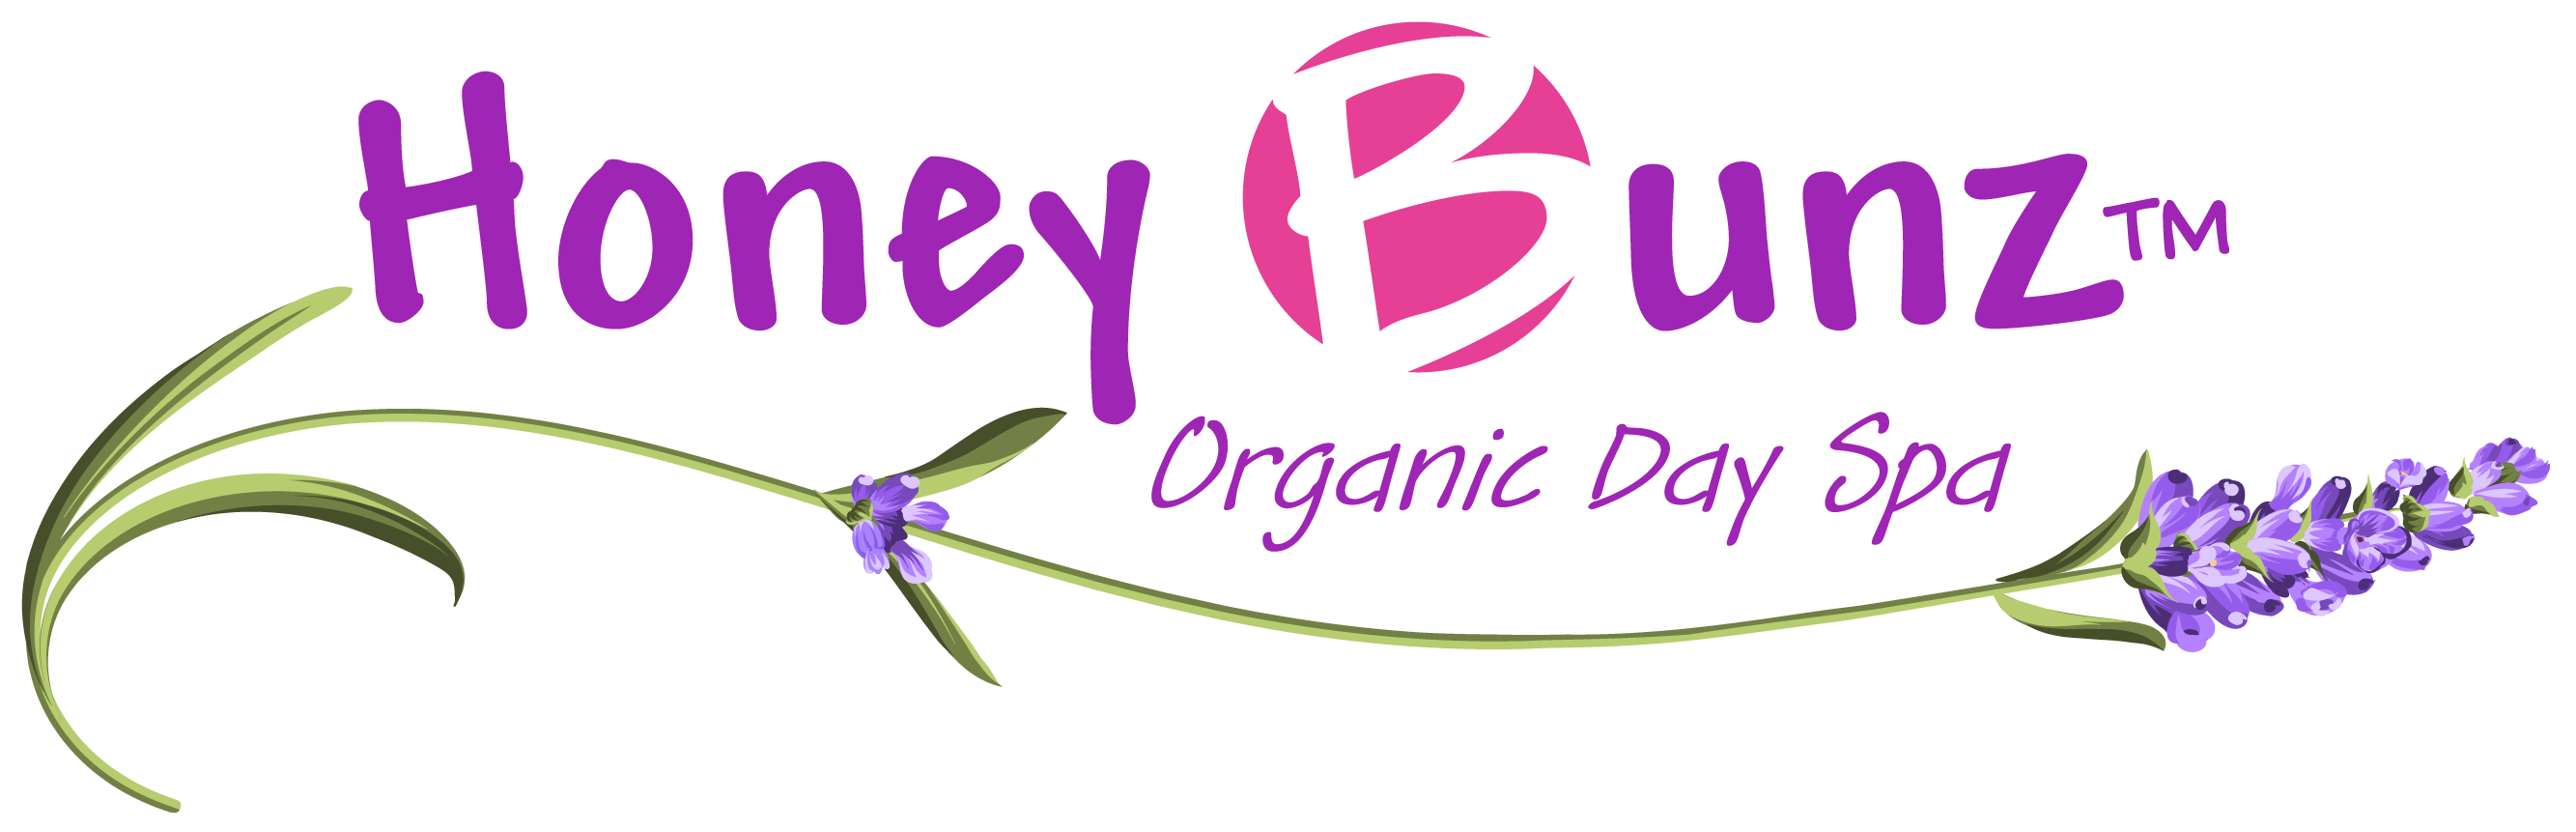 Honey Bunz™ Organic Day Spa